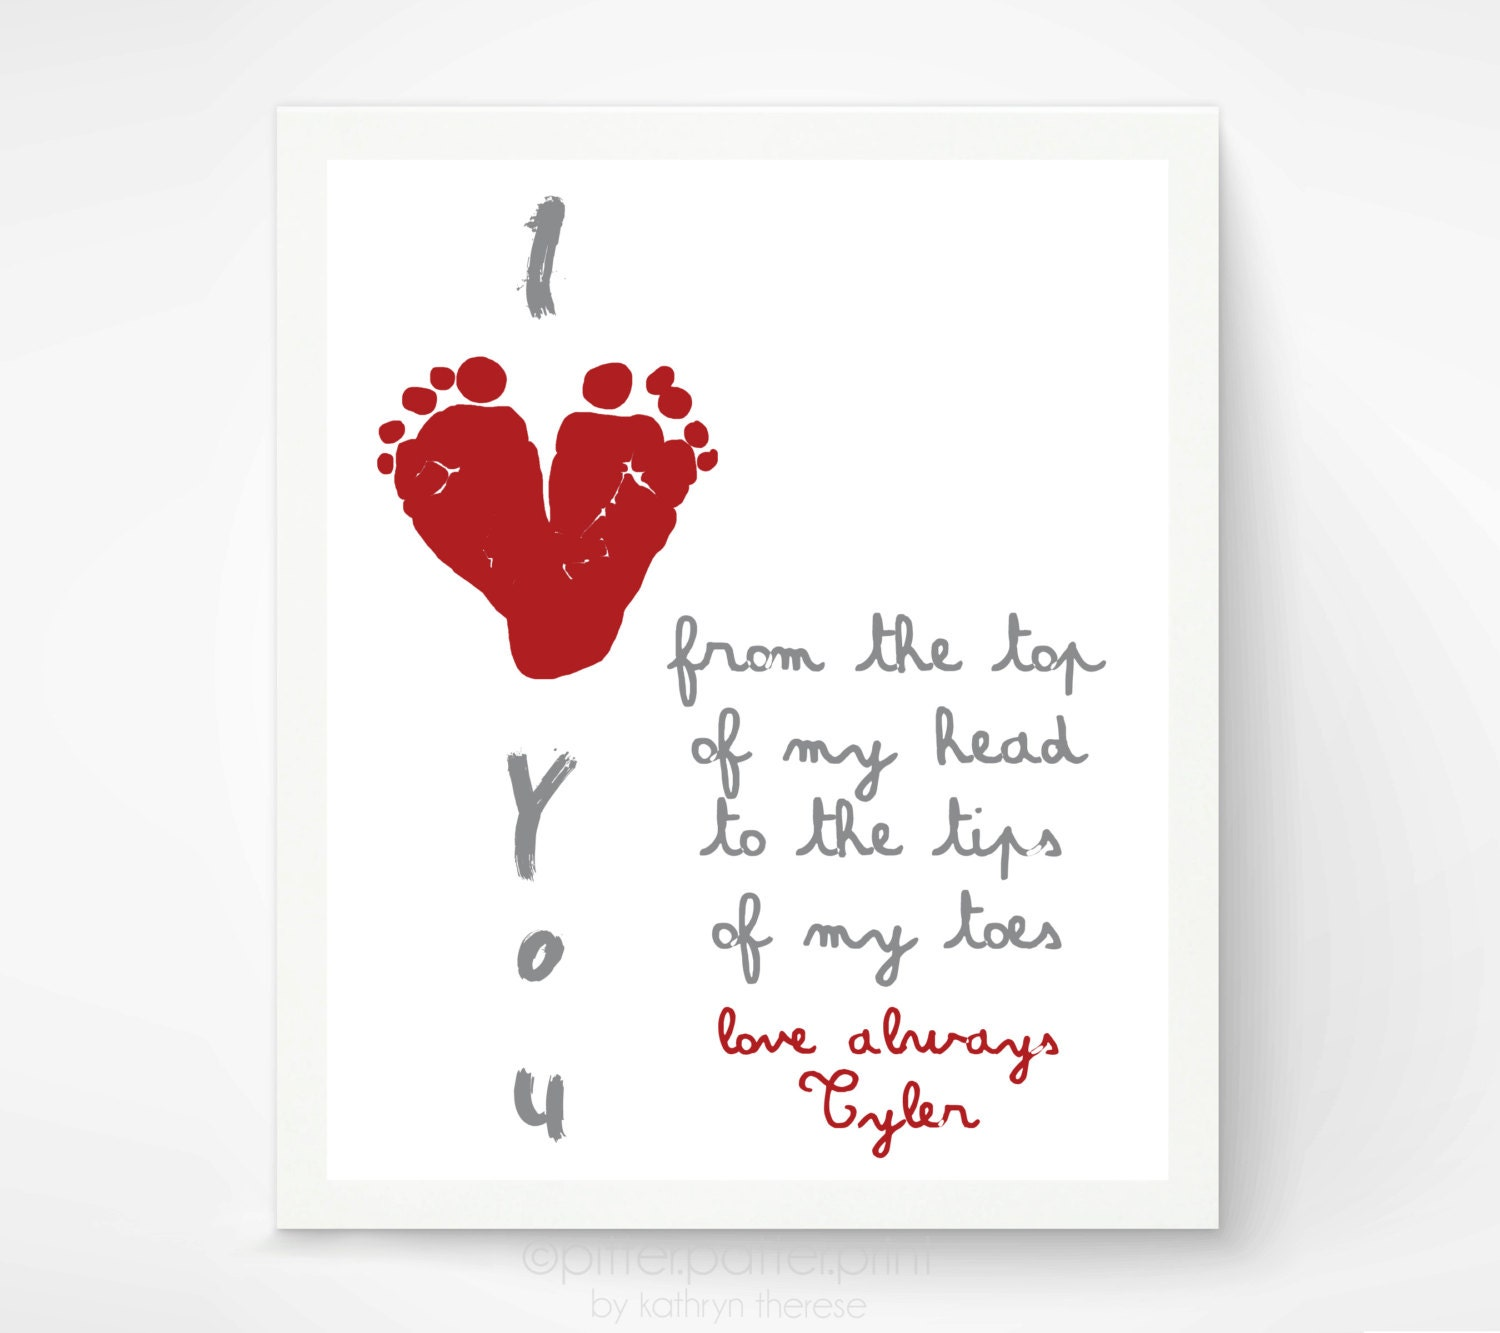 Baby S First Valentine S Day Quotes: I Love My Mom And Dad Quotes. QuotesGram